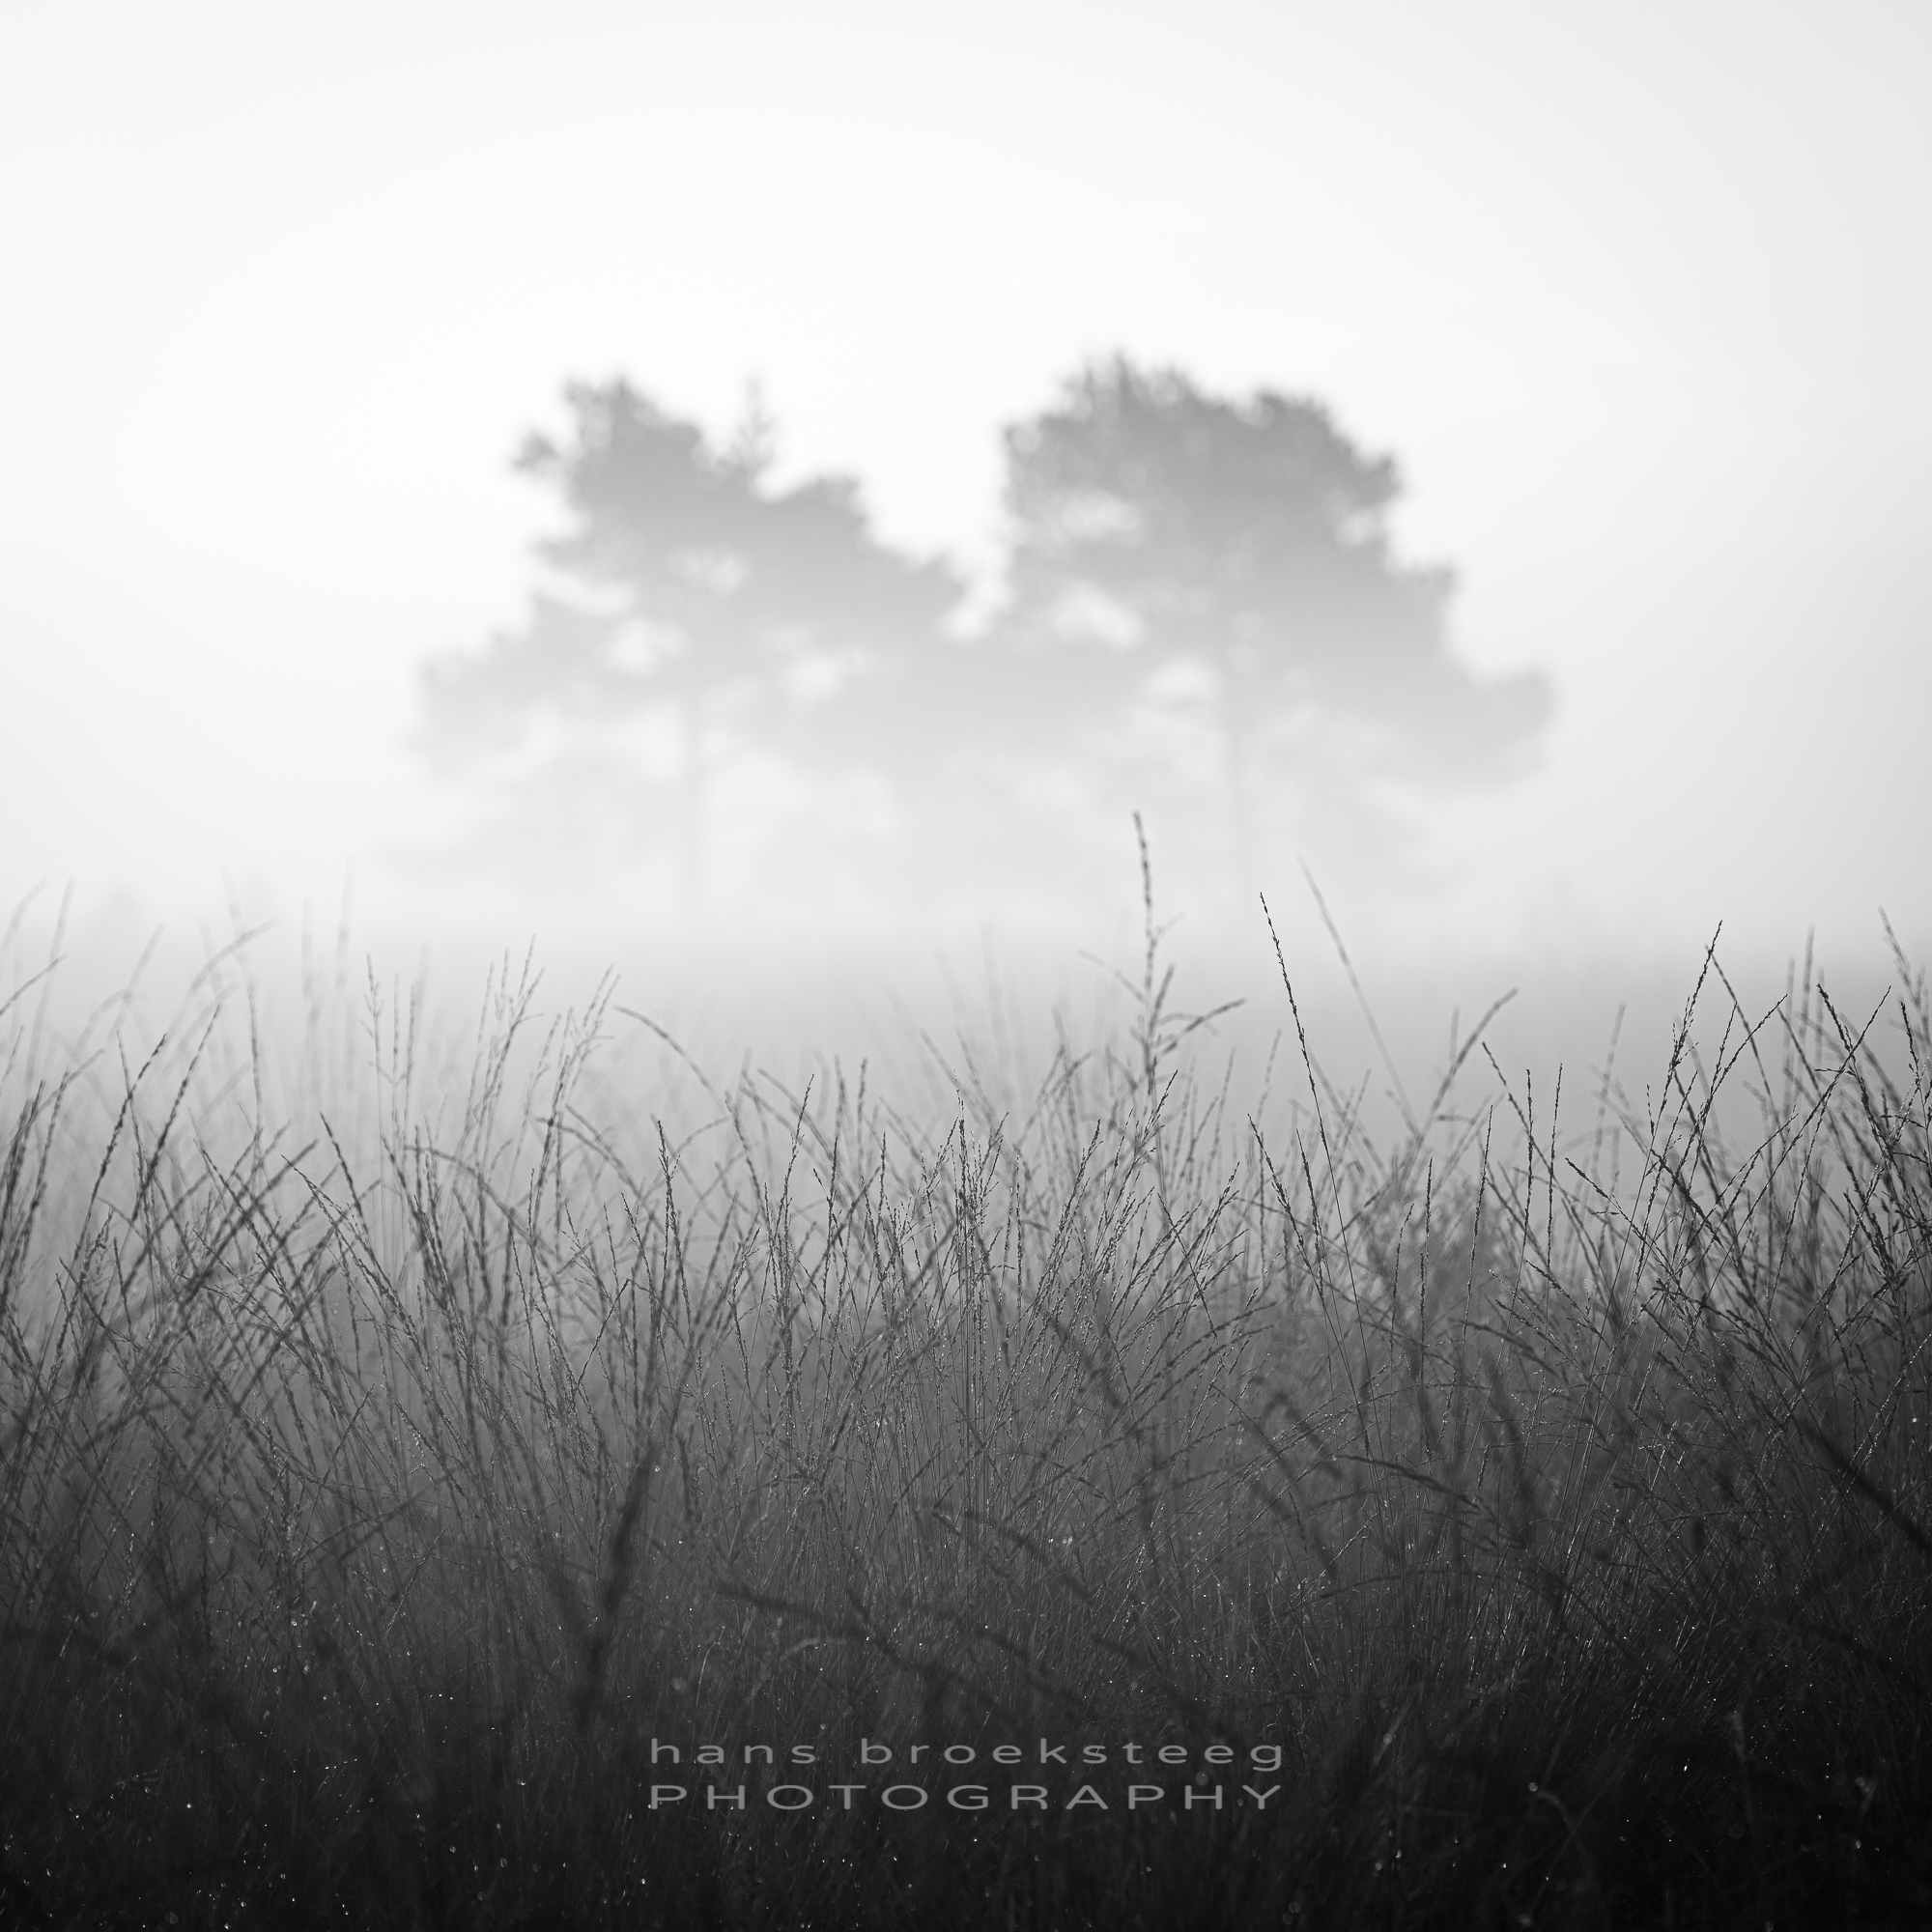 Mist and grass in black and white intimate landscape